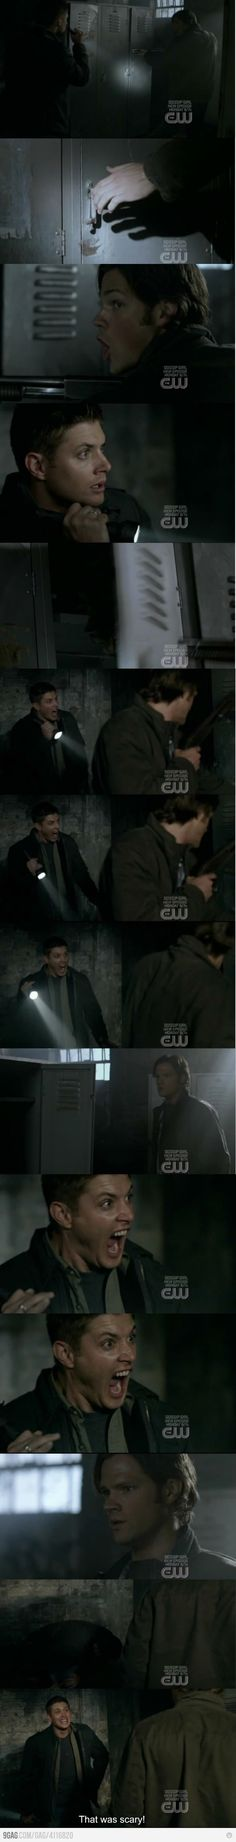 "Oh Dean! The way he screams, and the expression on his face, was the best! -Season 4, Episode 6, ""Yellow Fever"""